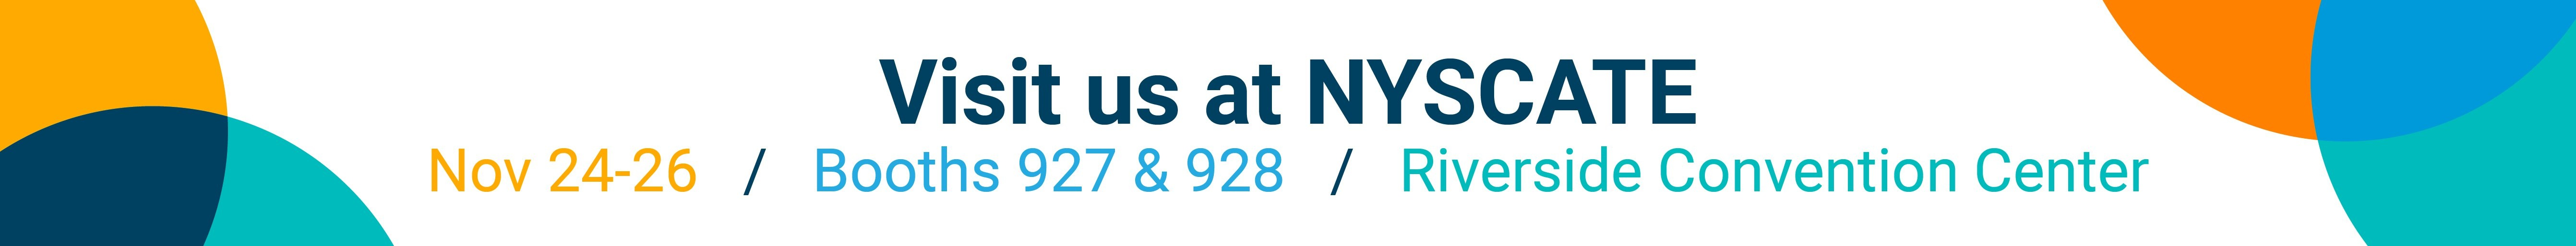 nycsate event page